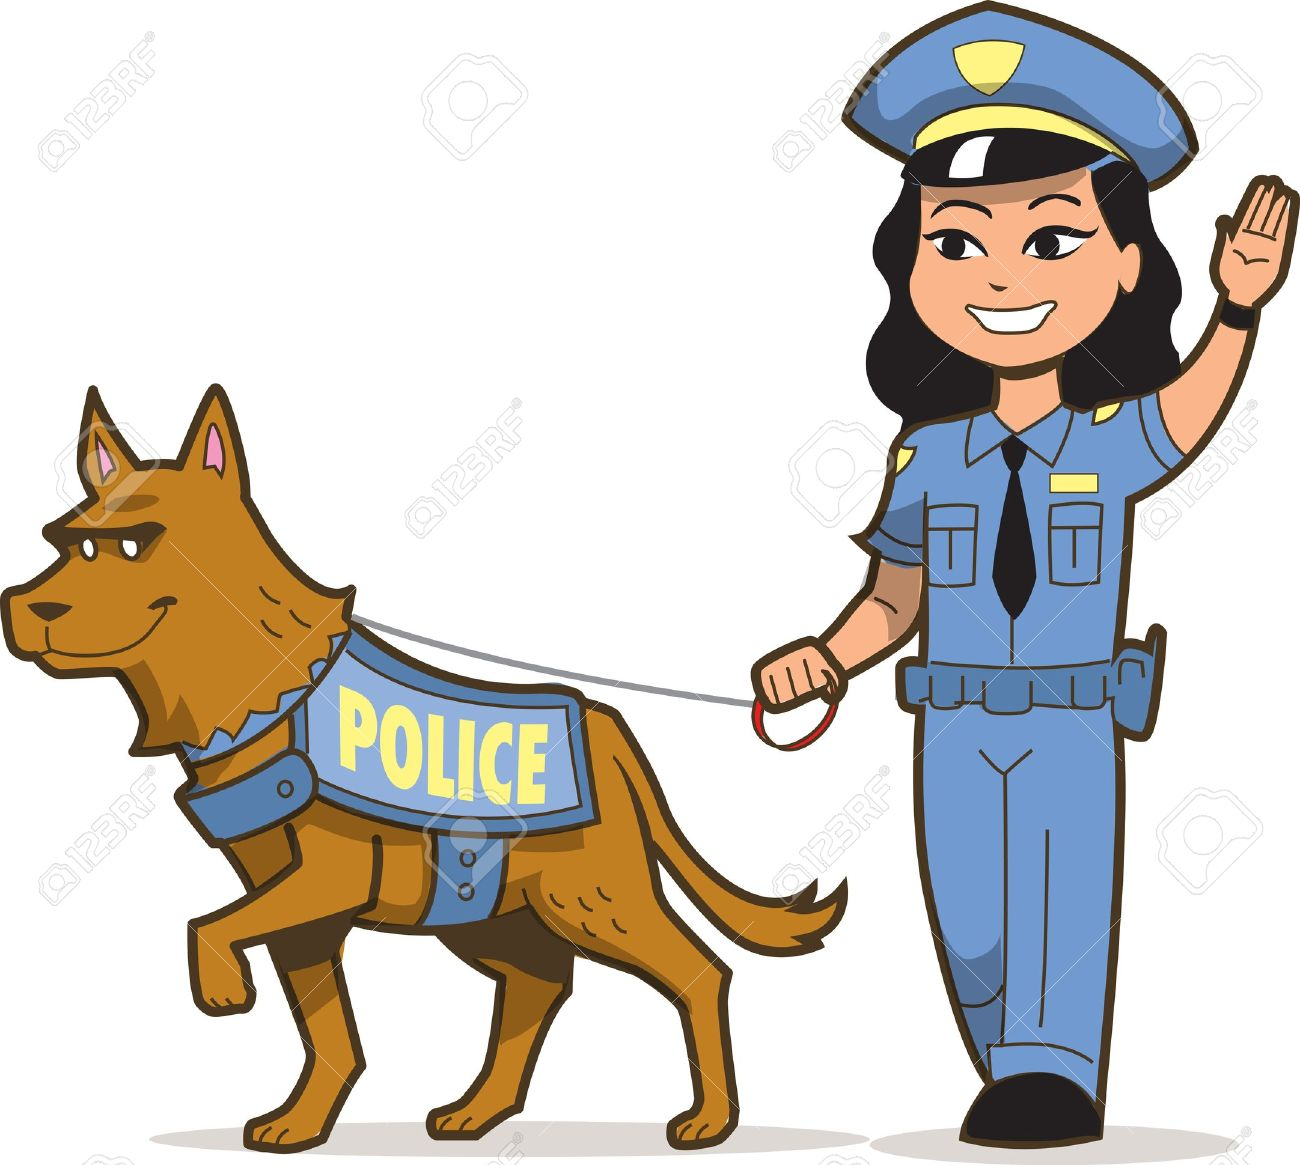 Lady security guard clipart jpg free library K-9 Police Dog And Asian Female Police Officer Royalty Free ... jpg free library